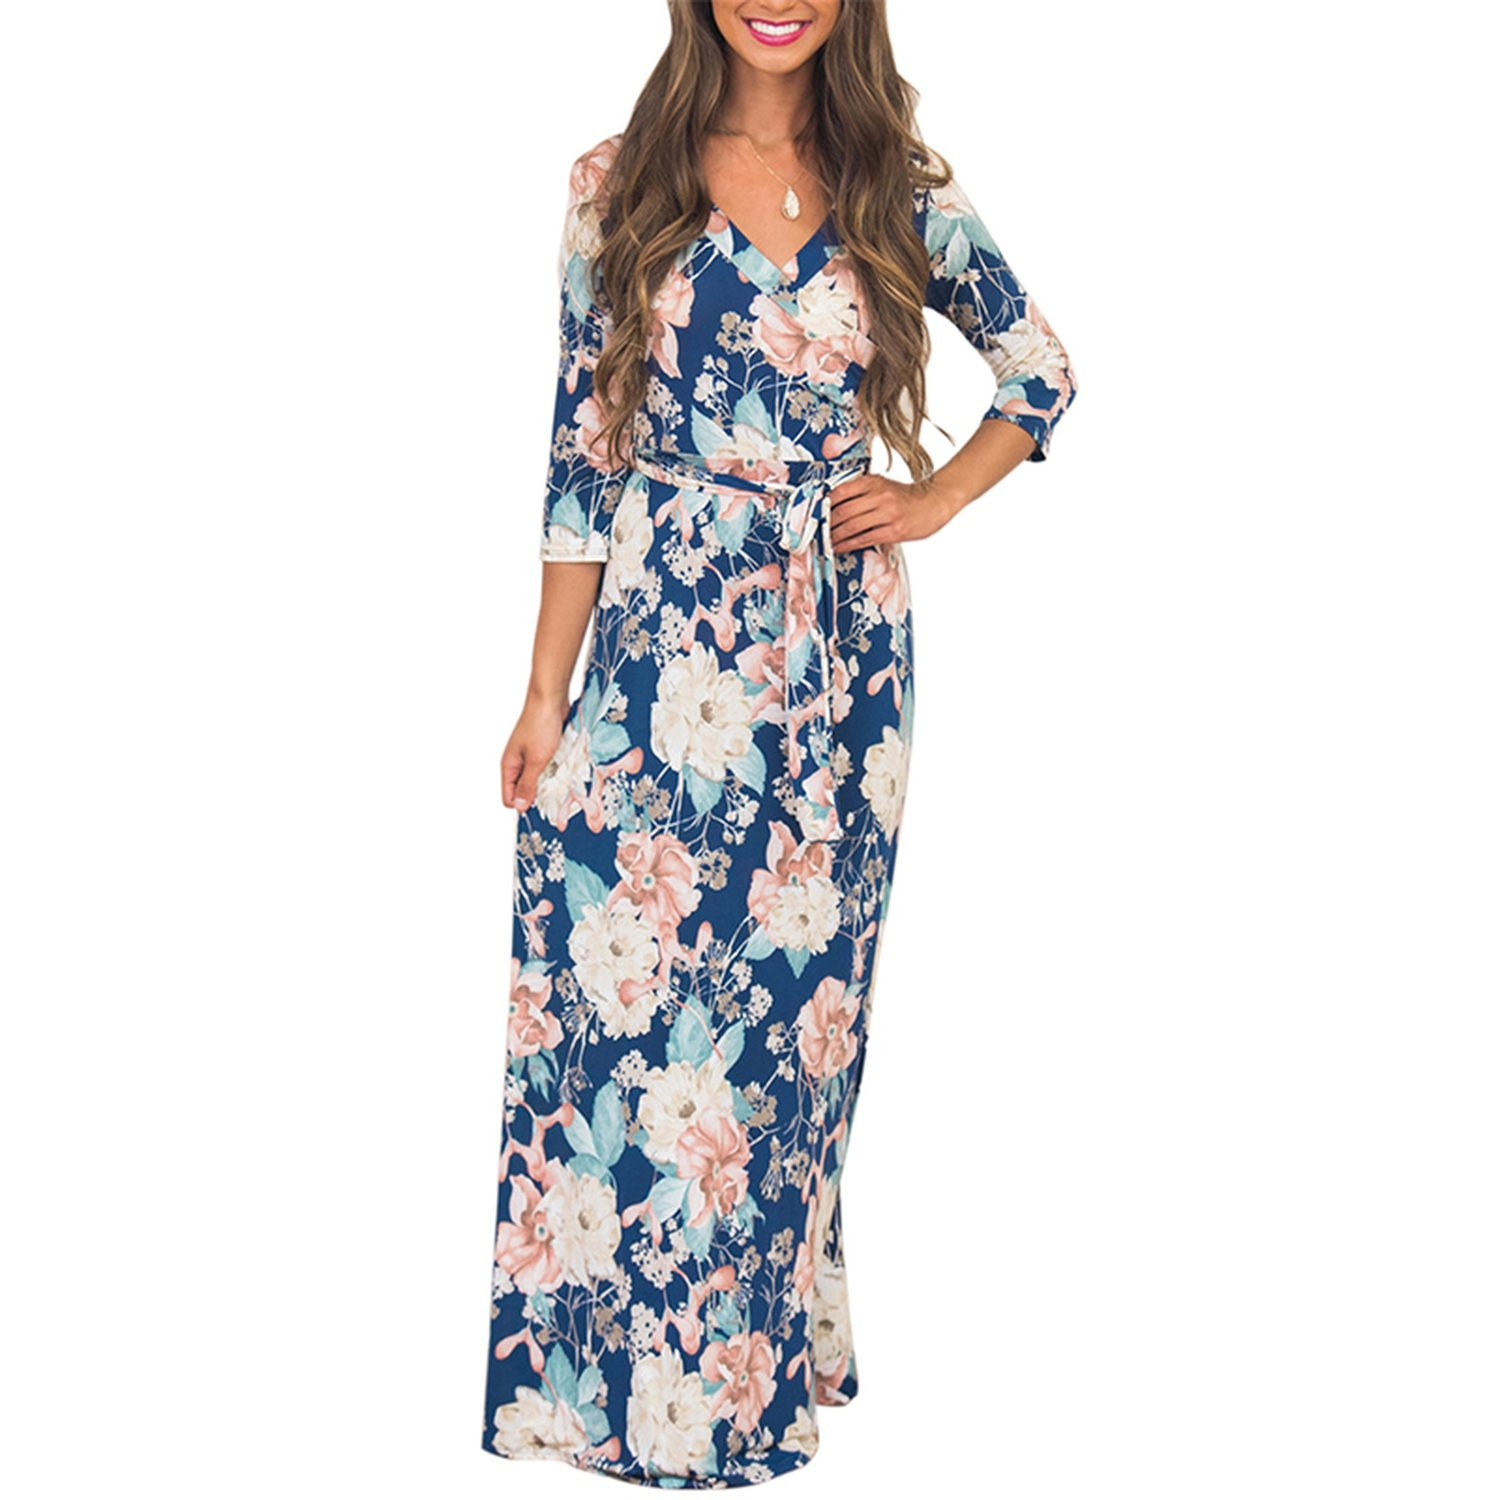 Sky-Pegasus Bohemian Floral Print 3/4 Sleeve Maxi Dress Women 2018 Summer Boho Robe Femme V Neck at Amazon Womens Clothing store: